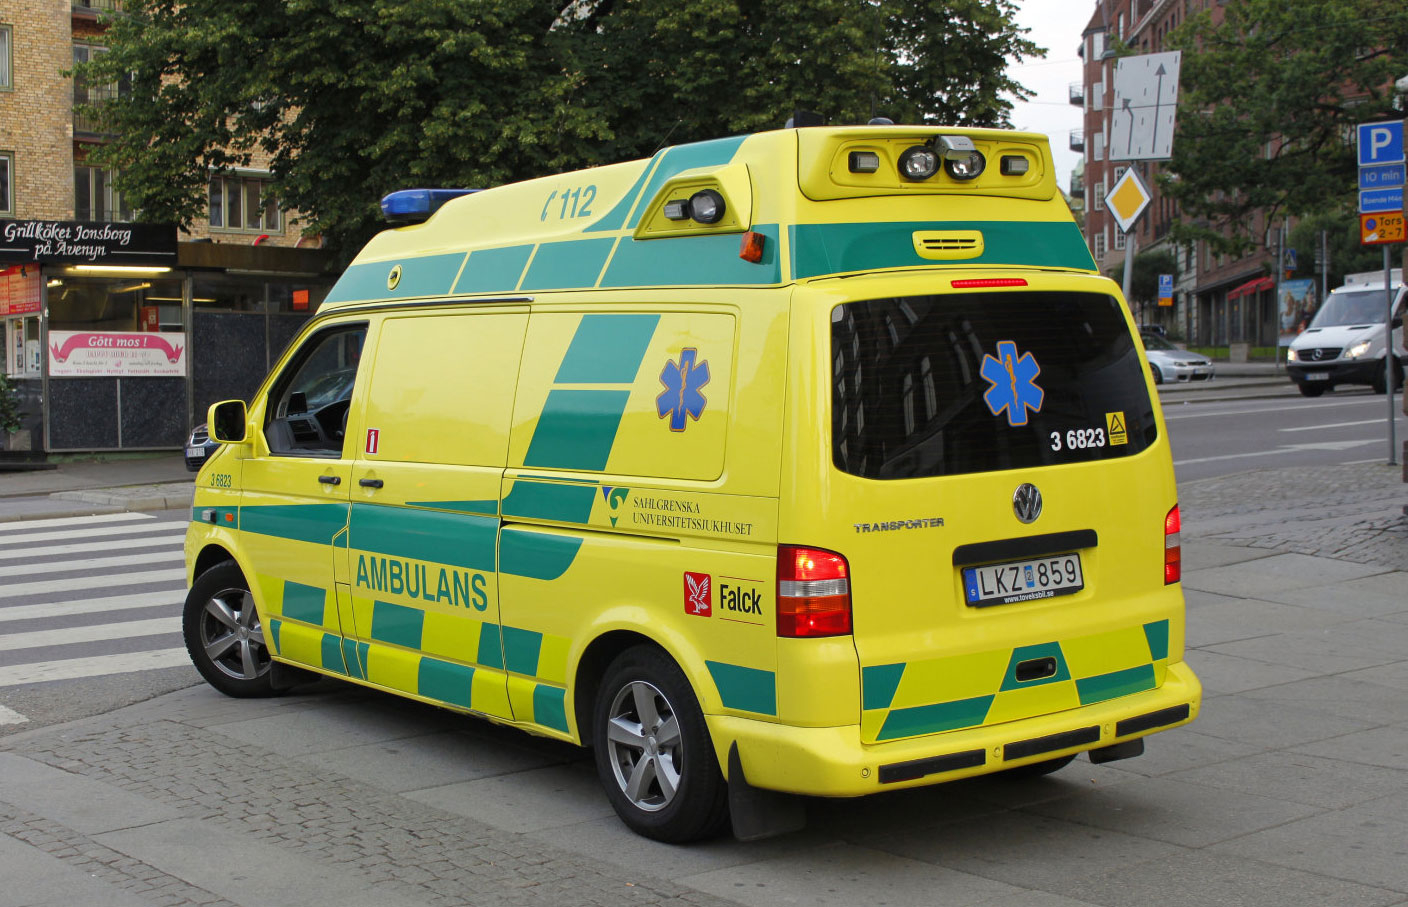 sweden, ambulance, emergency vehicle